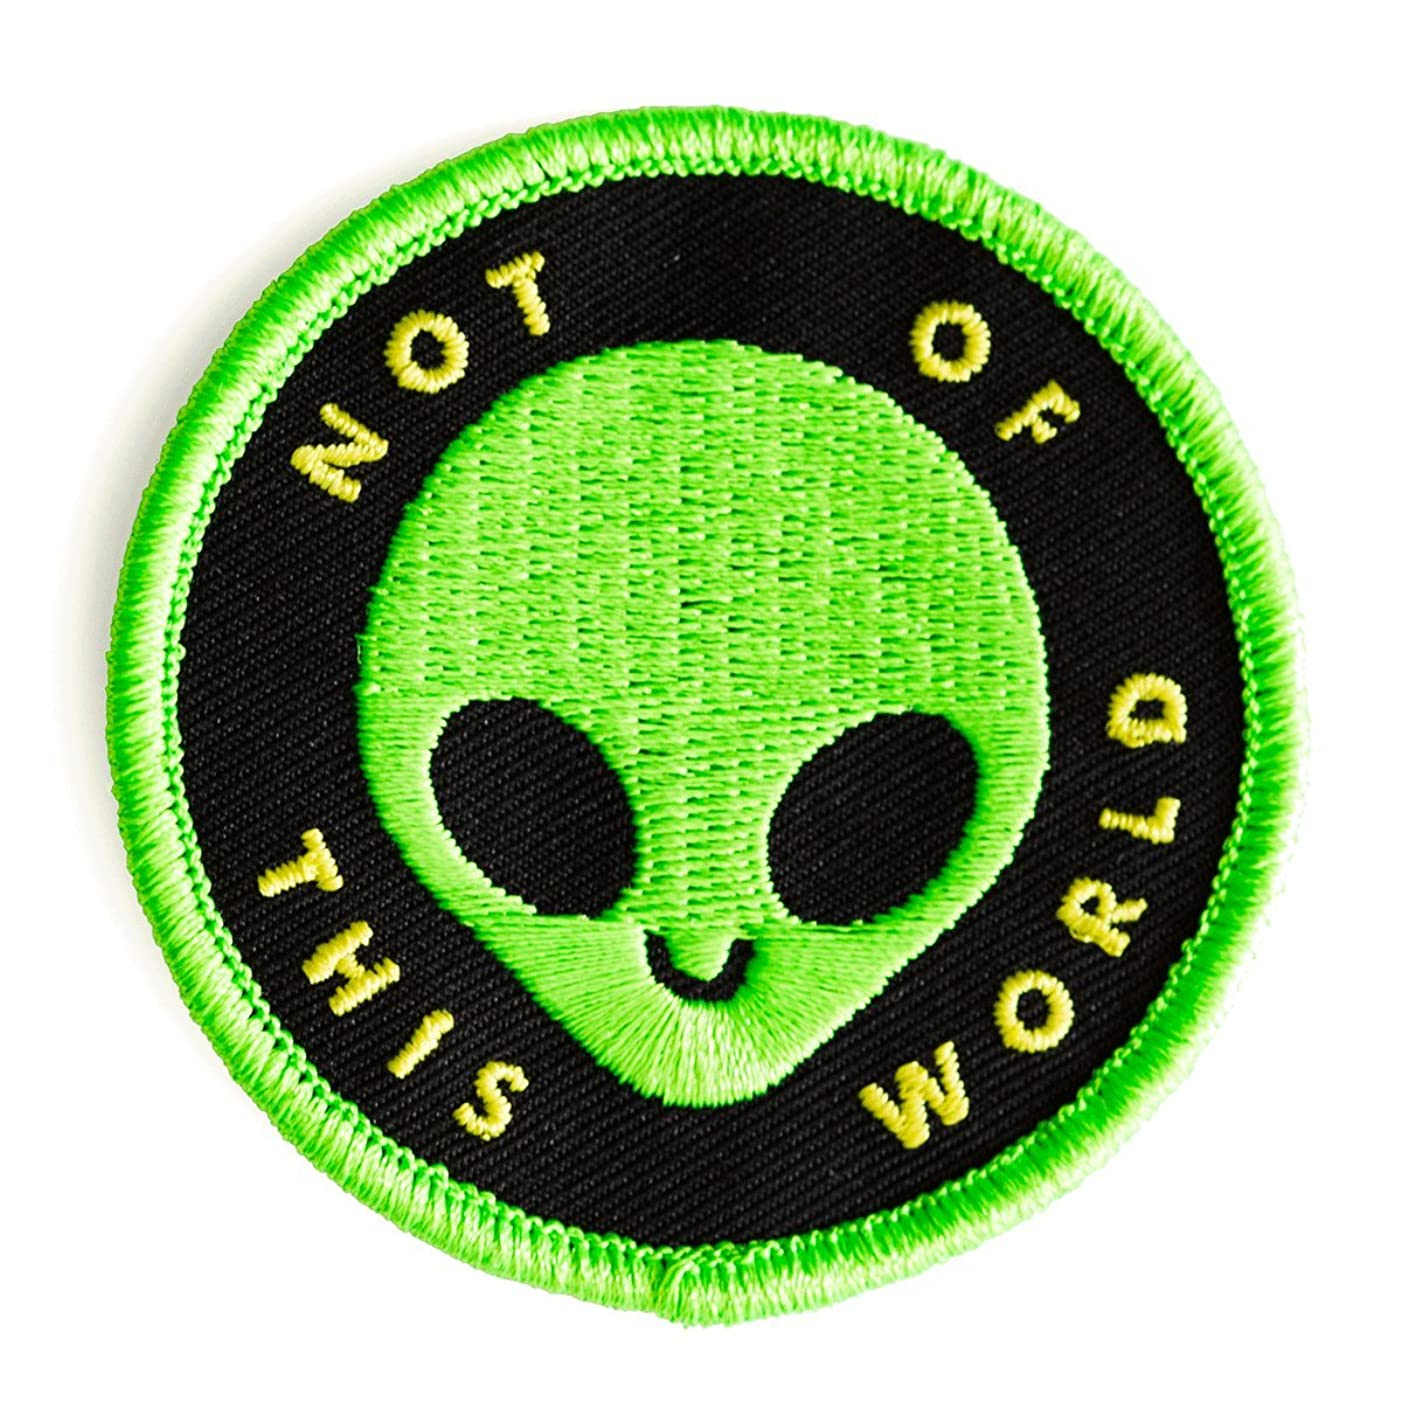 These Are Things Not of This World Embroidered Iron On or Sew On Patch